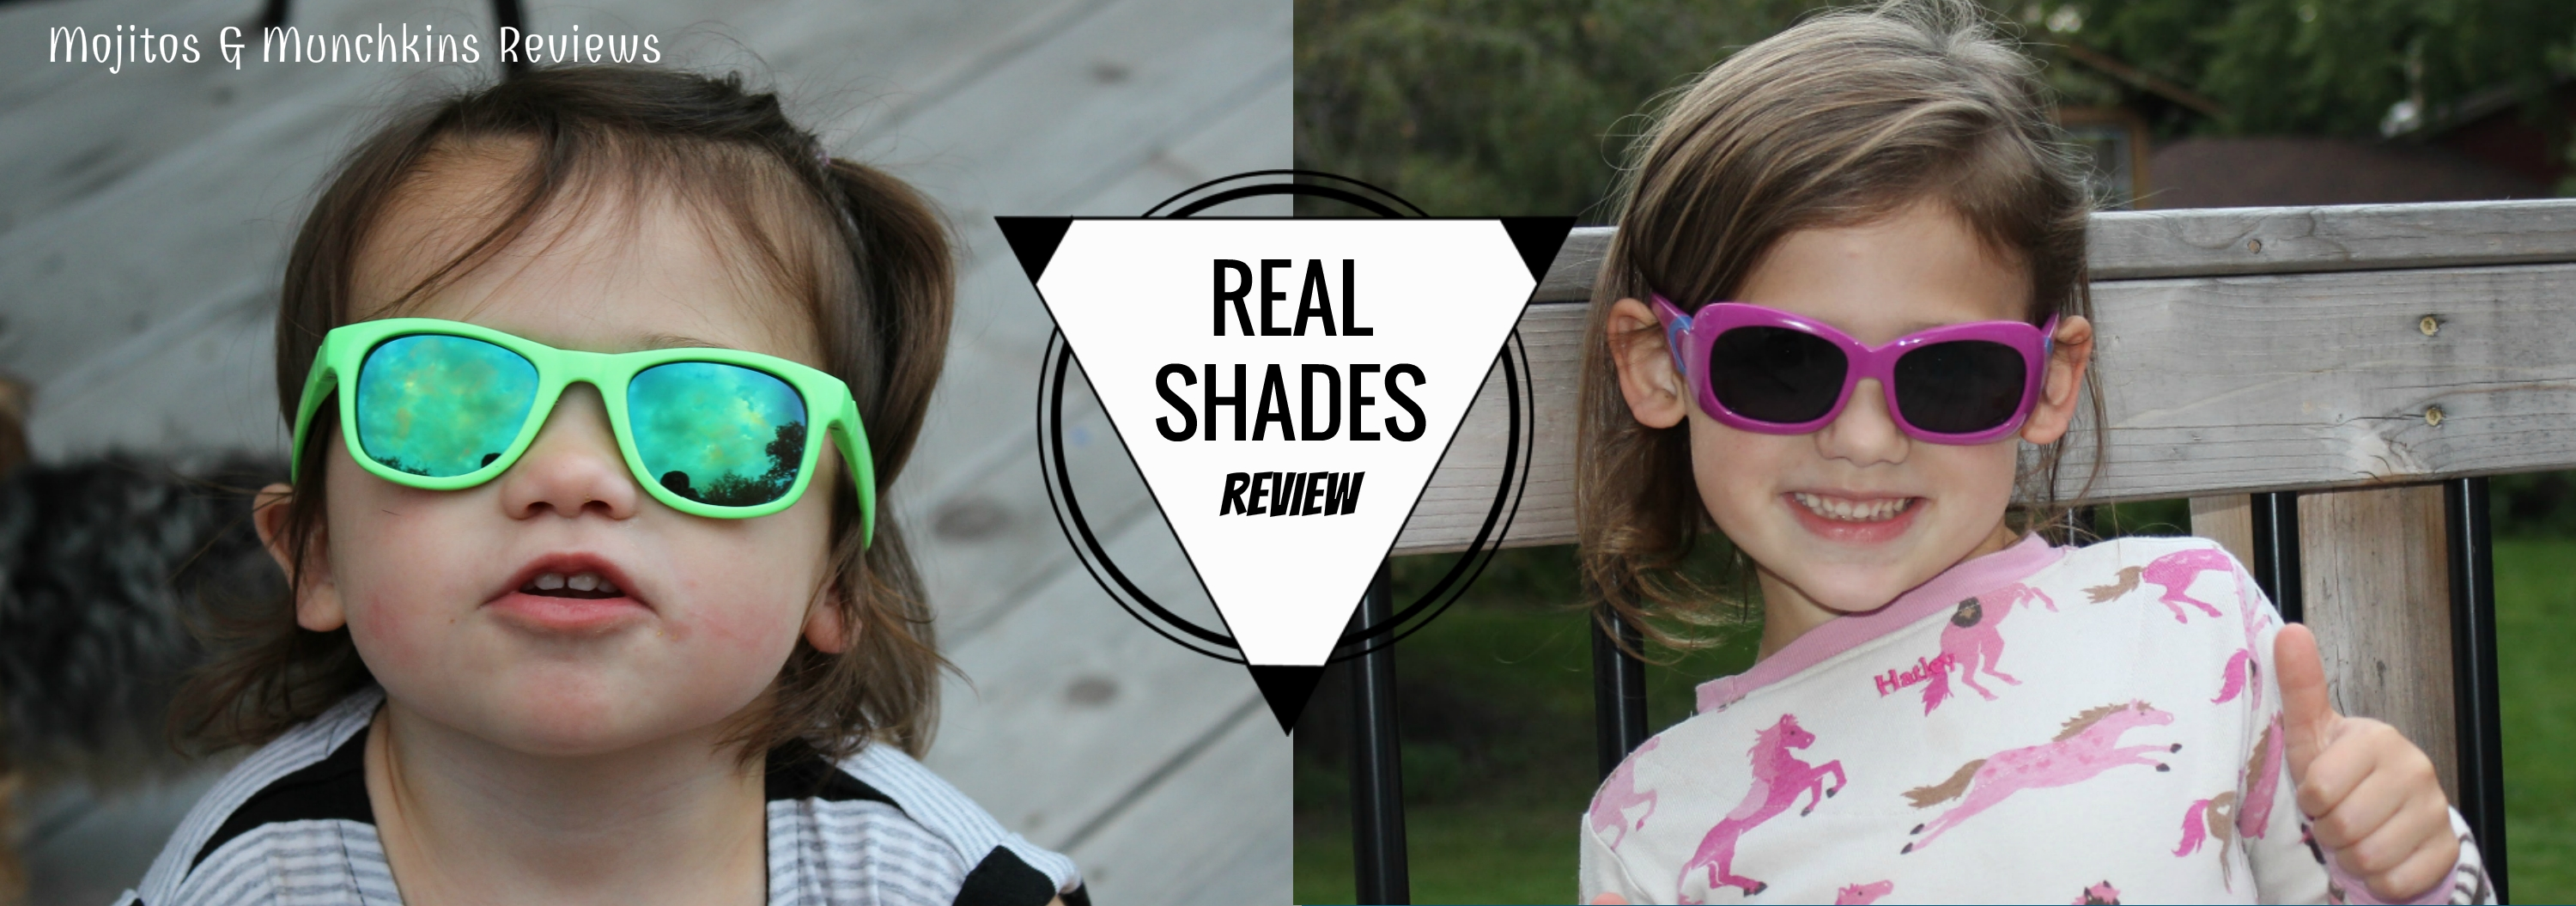 Review:: REAL SHADES Kids' Sunglasses for REAL kids